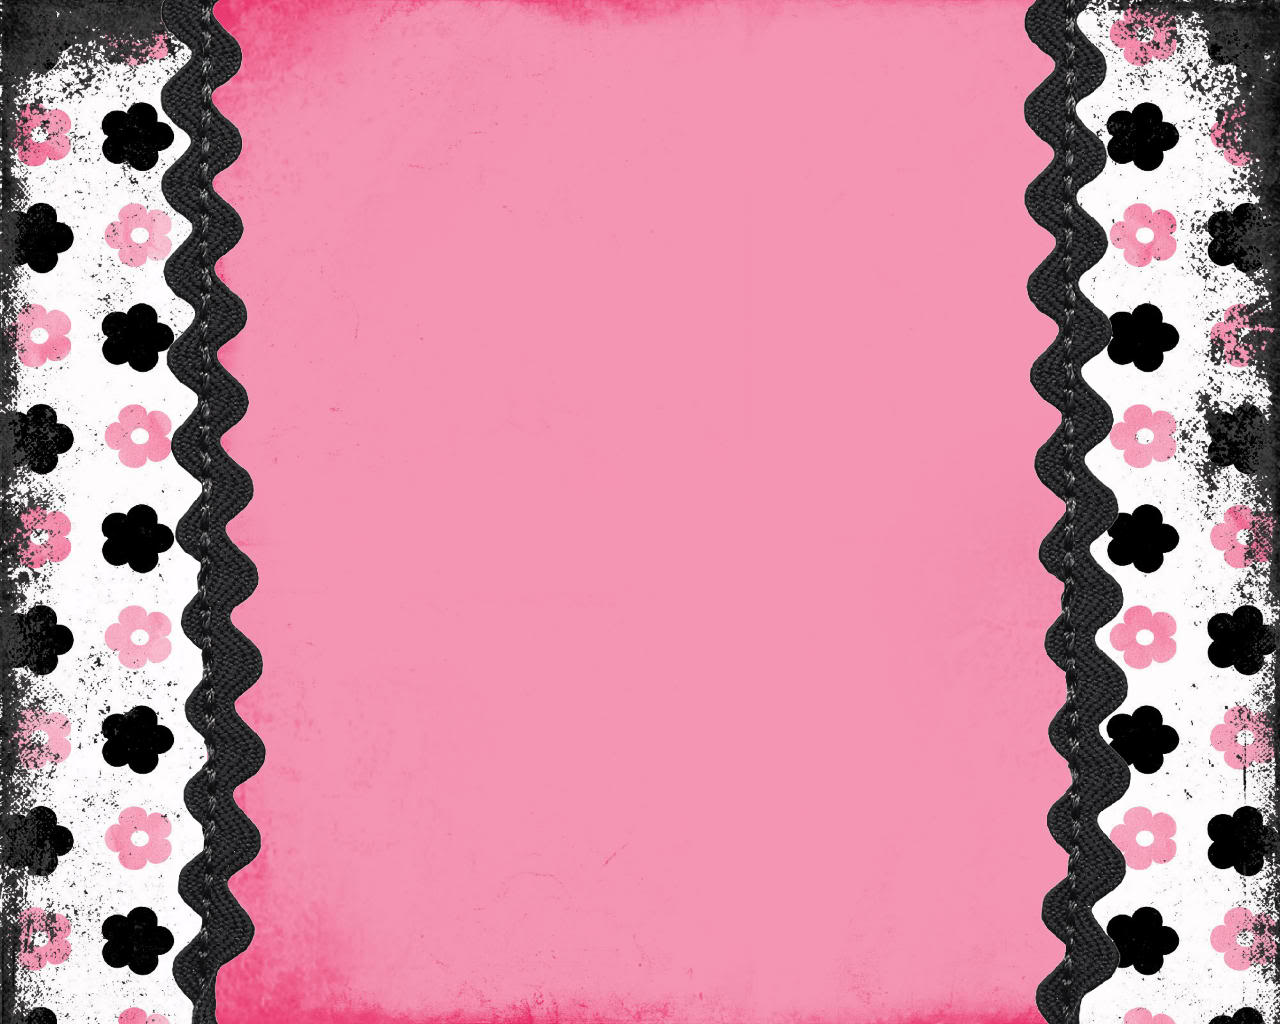 Black and pink wallpaper borders 15 background for Wallpaper borders